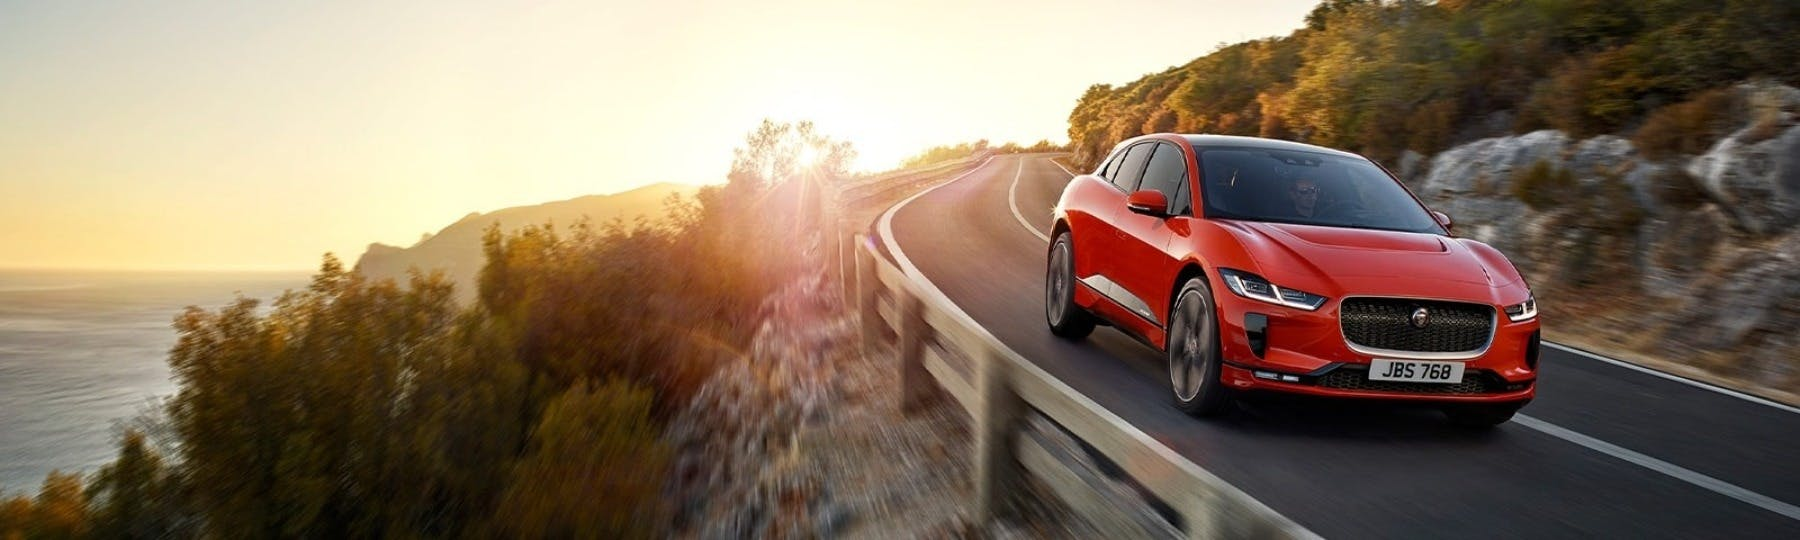 All Electric Jaguar I-PACE Used Car Offer